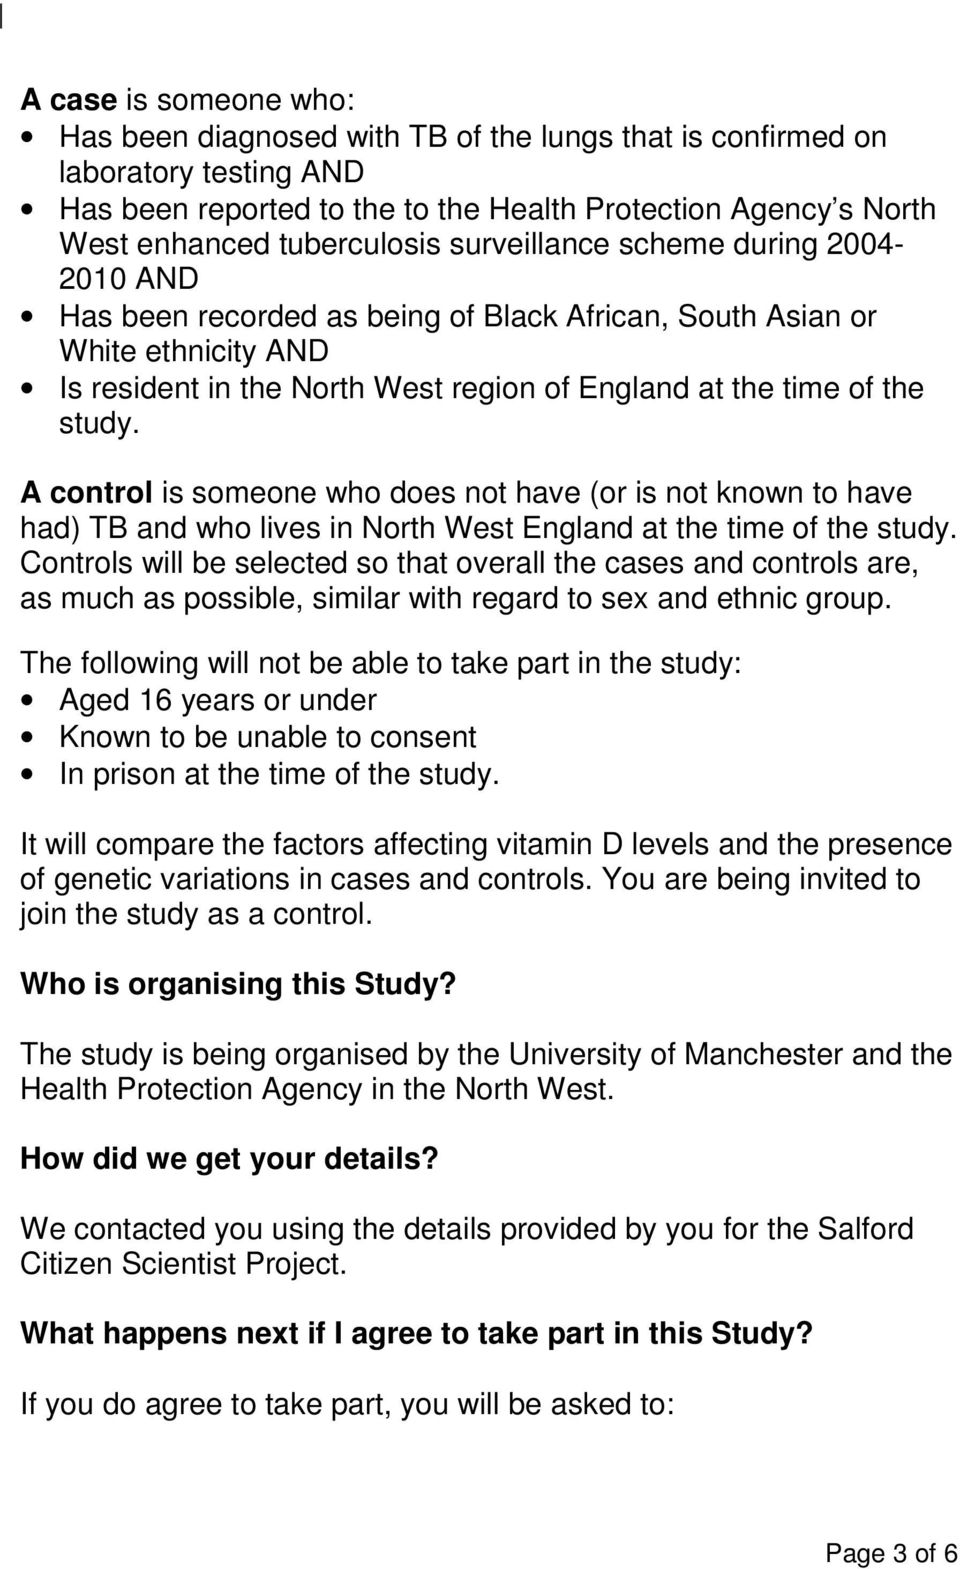 A control is someone who does not have (or is not known to have had) TB and who lives in North West England at the time of the study.